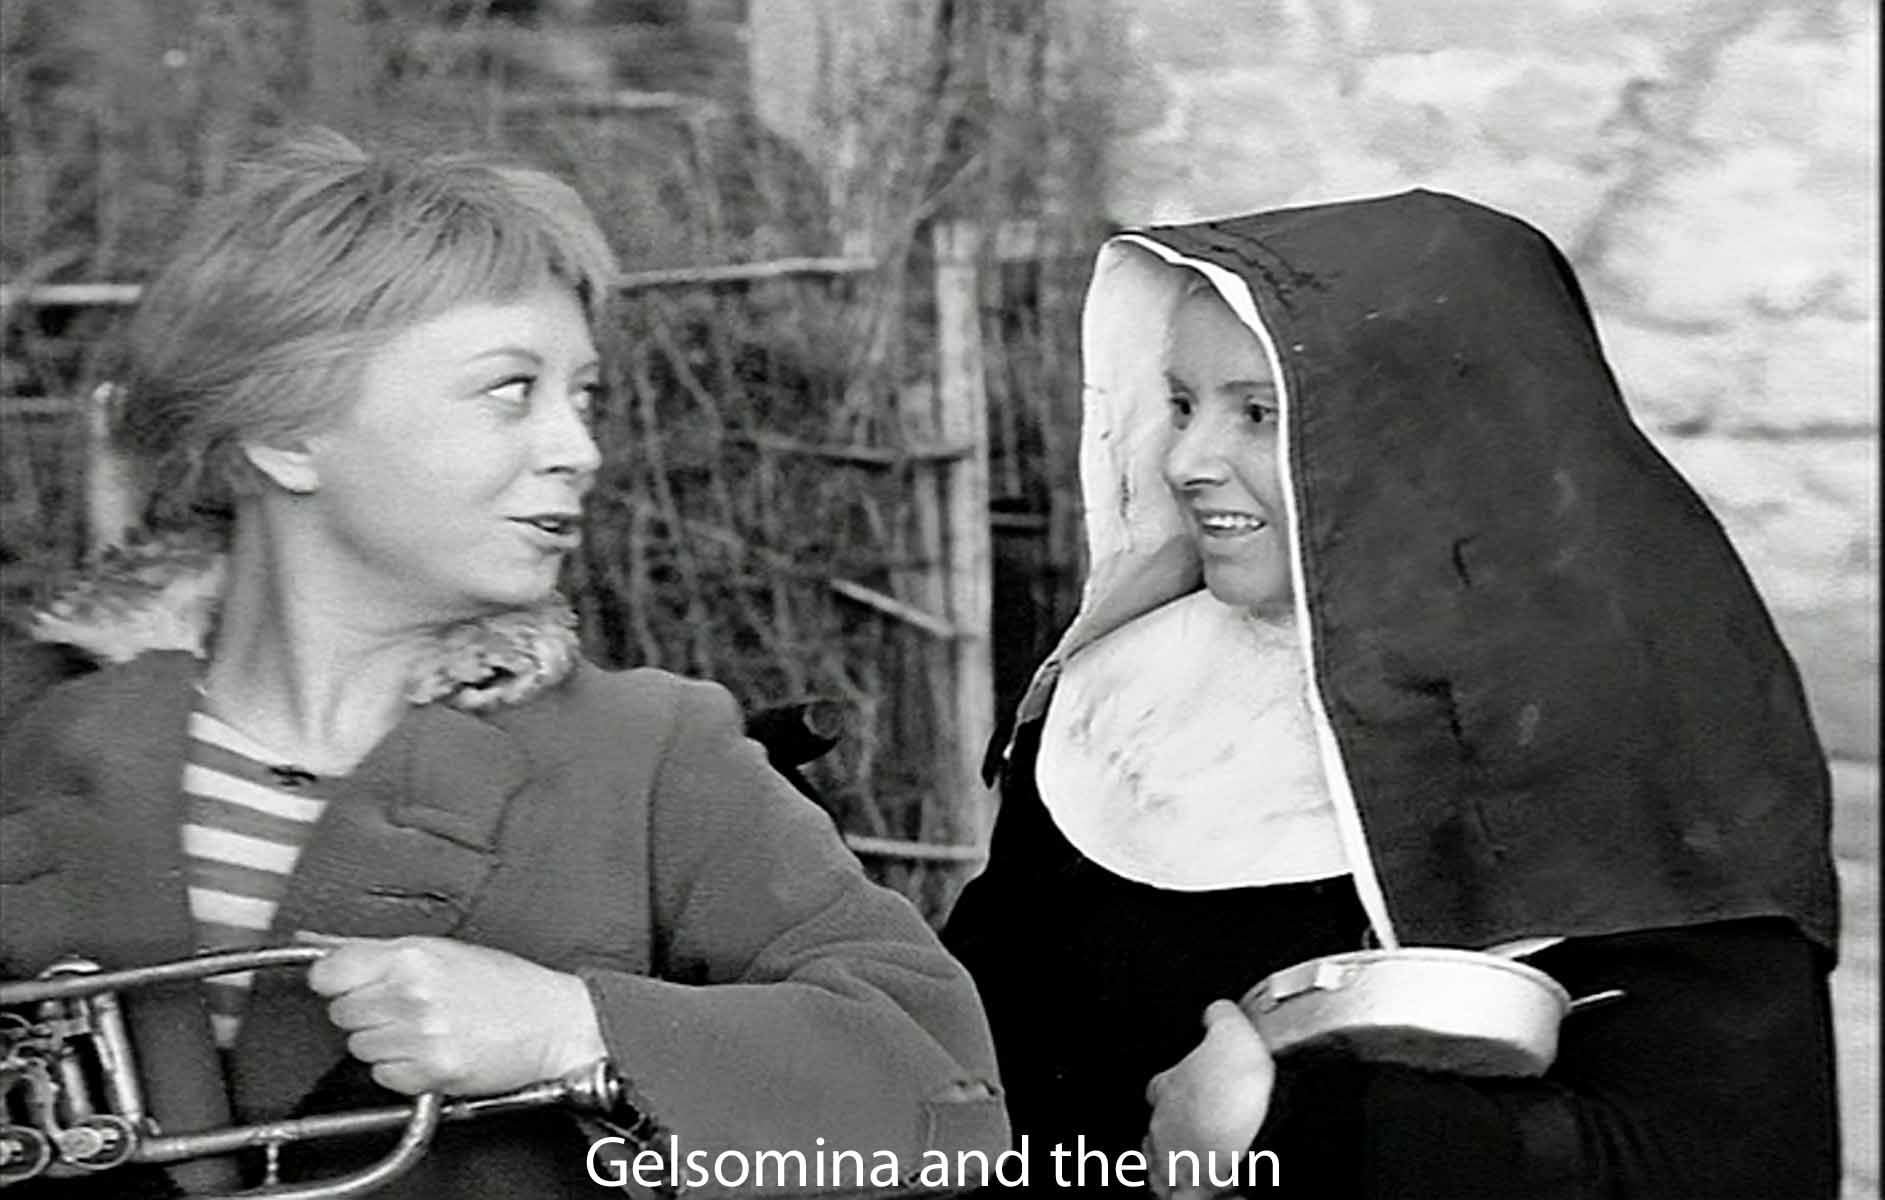 Gelsomina and the nun